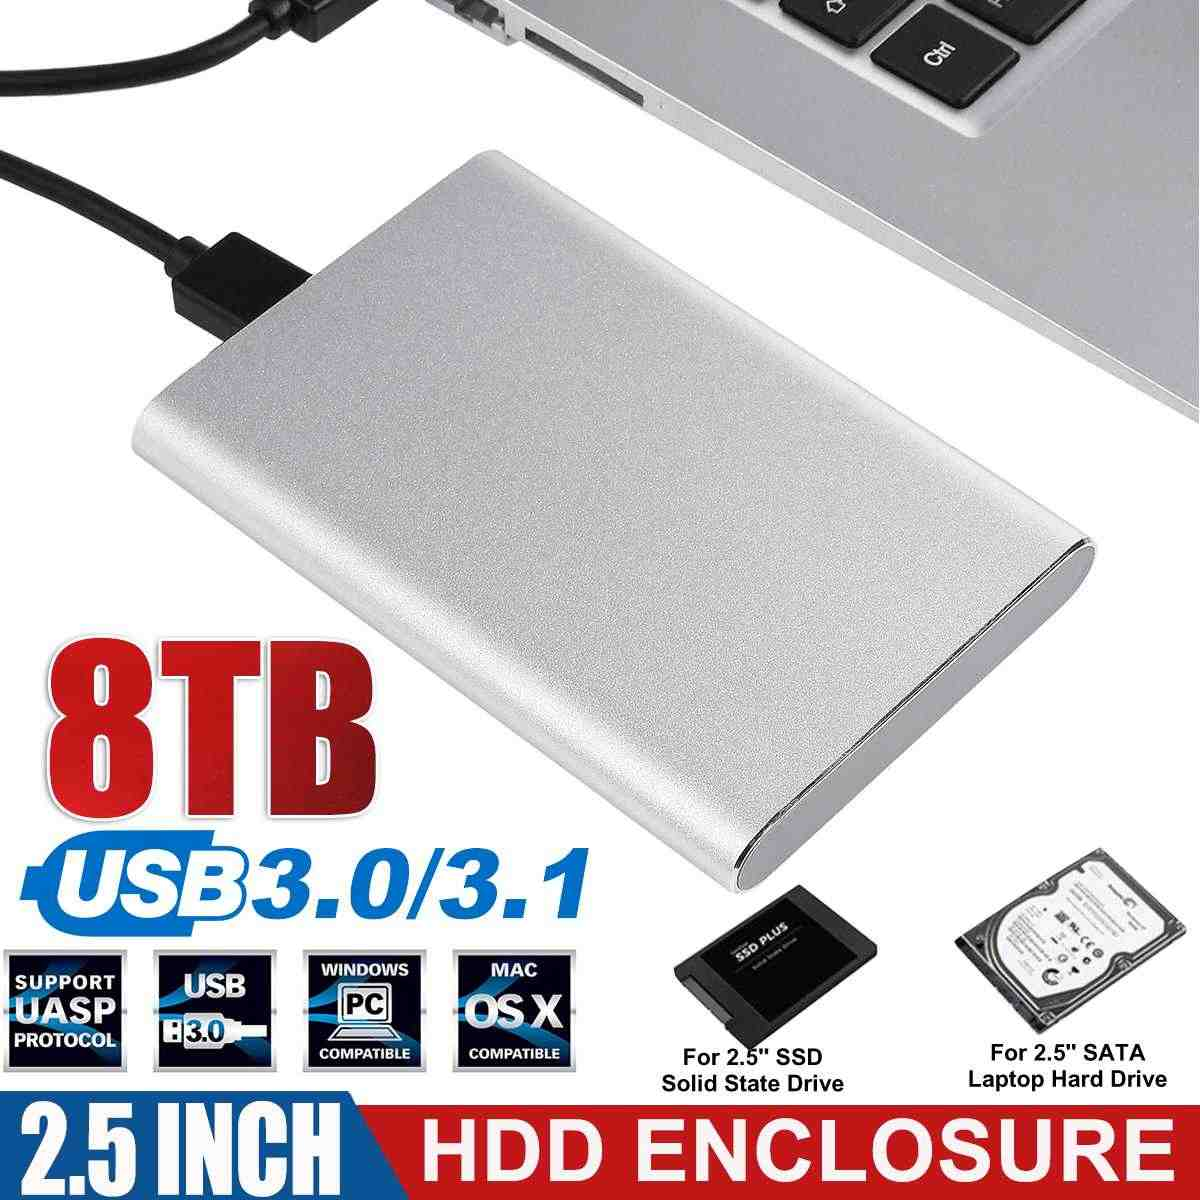 Profesional USB3.0/3.1 HDD Enclosure 2.5 Inch Serial Port SATA SSD Hard Drive Case Mendukung 8TB Memori Ponsel eksternal HDD Case